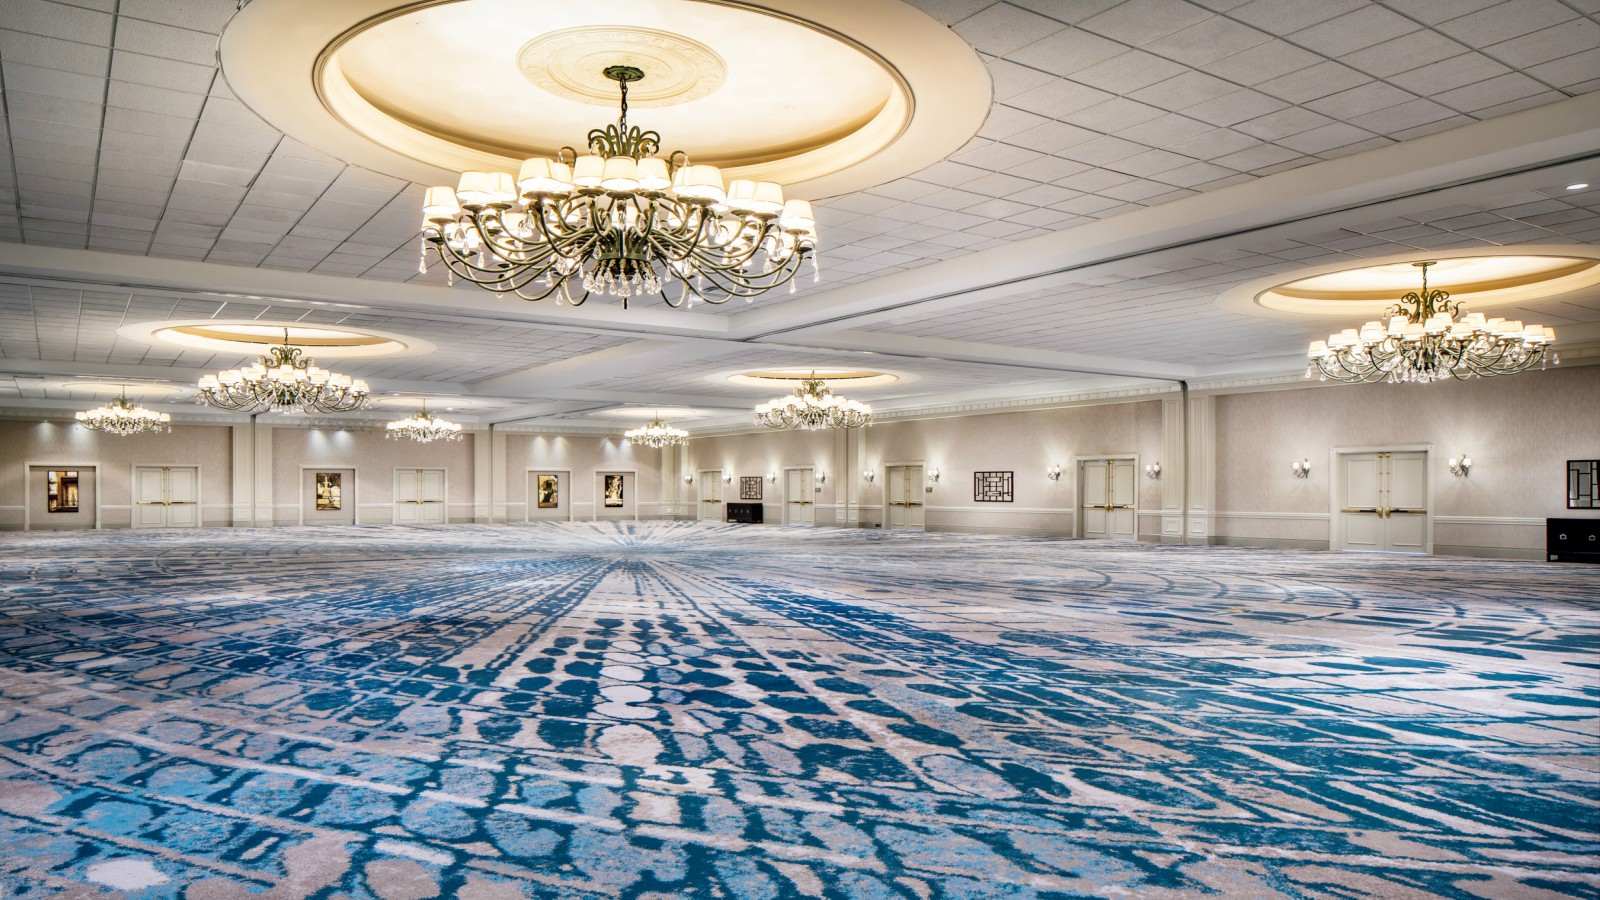 Savannah, GA Wedding Venues - The Grand Ball Room